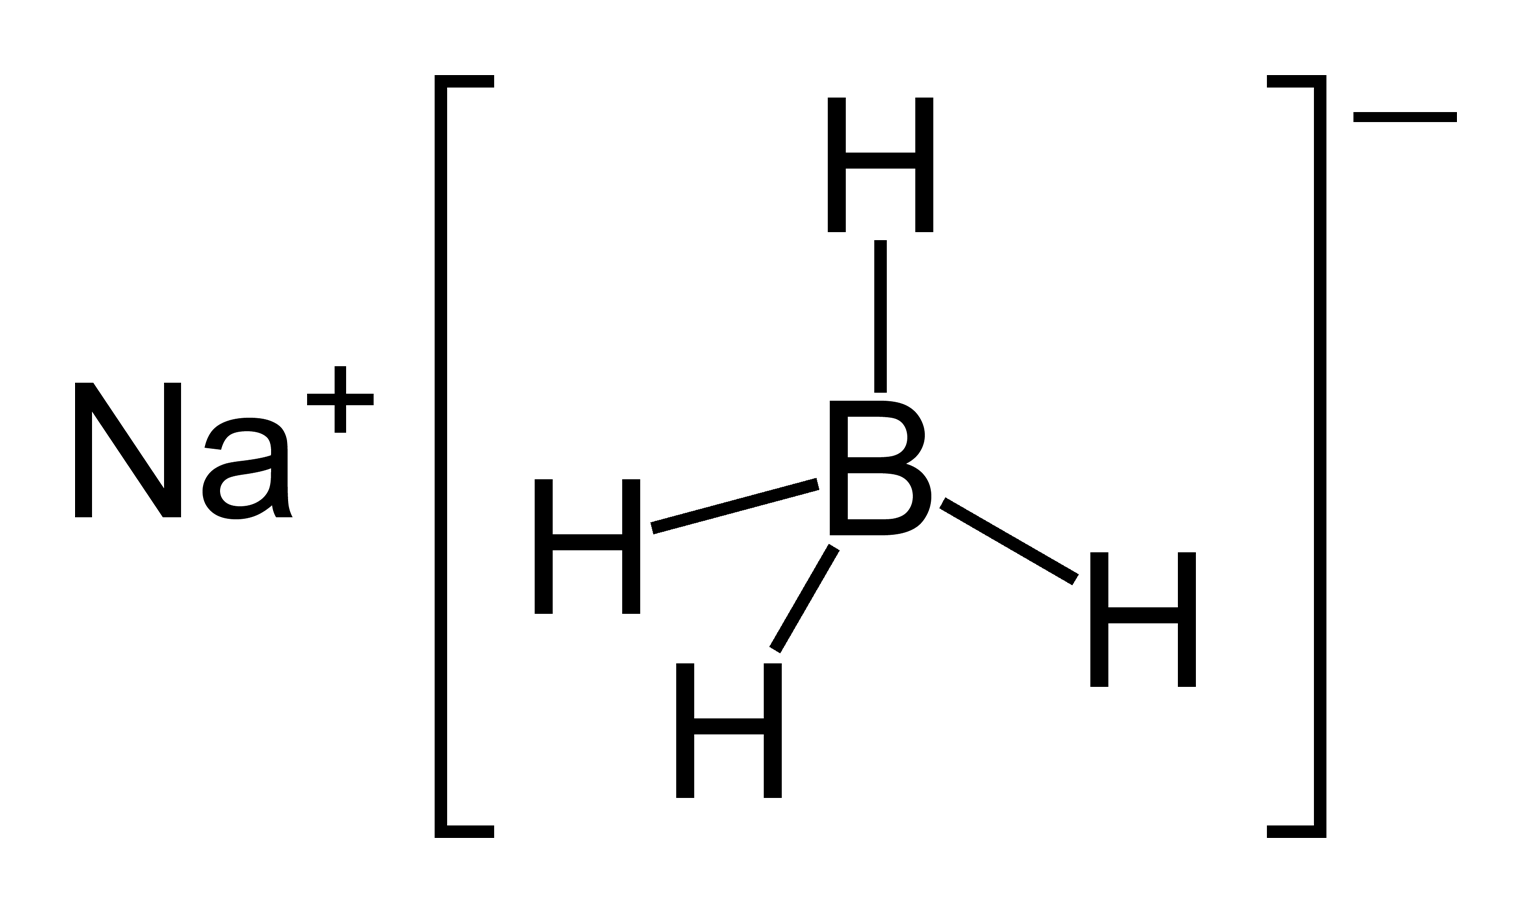 File:Sodium-borohydride.png - Wikipedia, the free encyclopedia